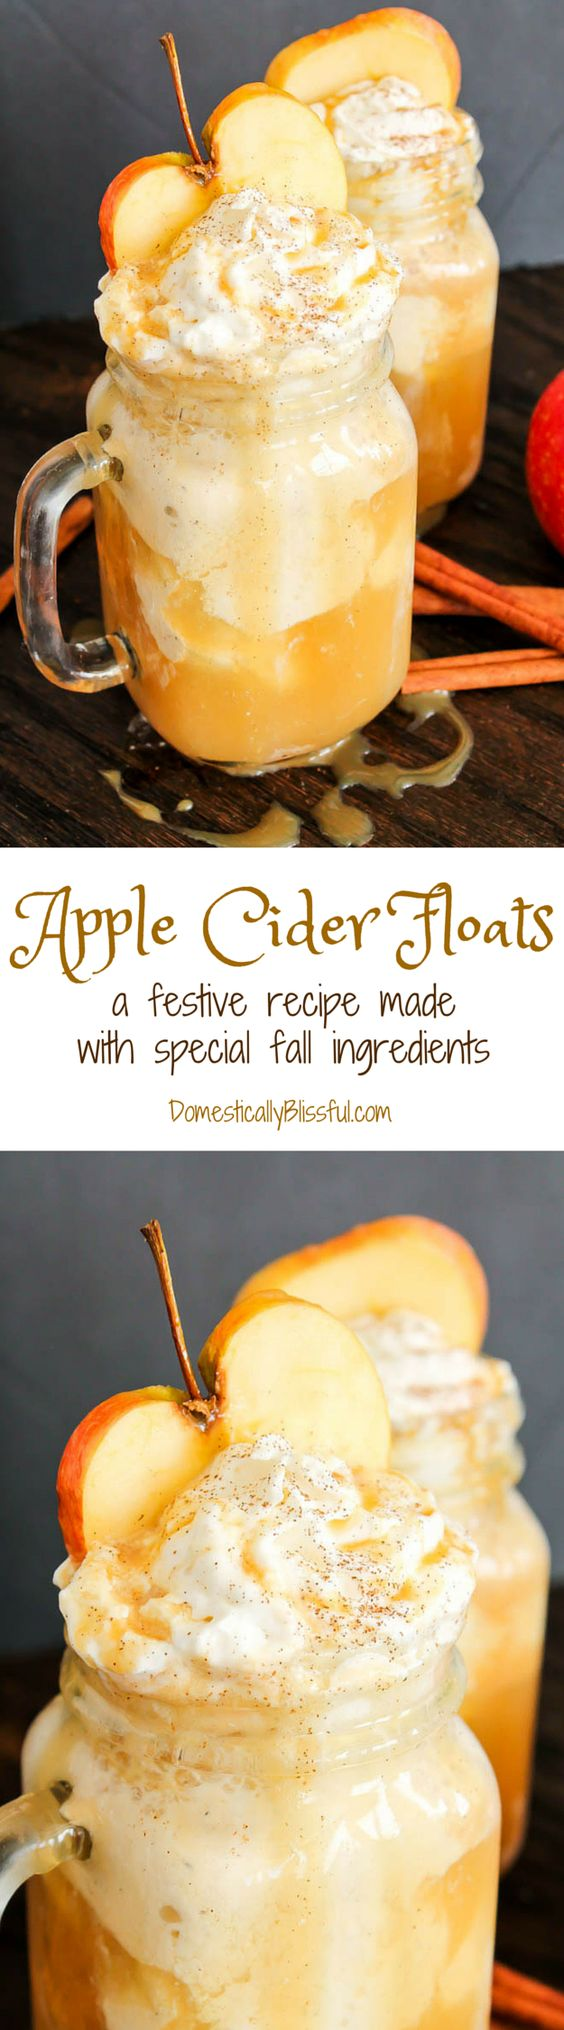 These Apple Cider Floats are made from special fall ingredients & are a…: